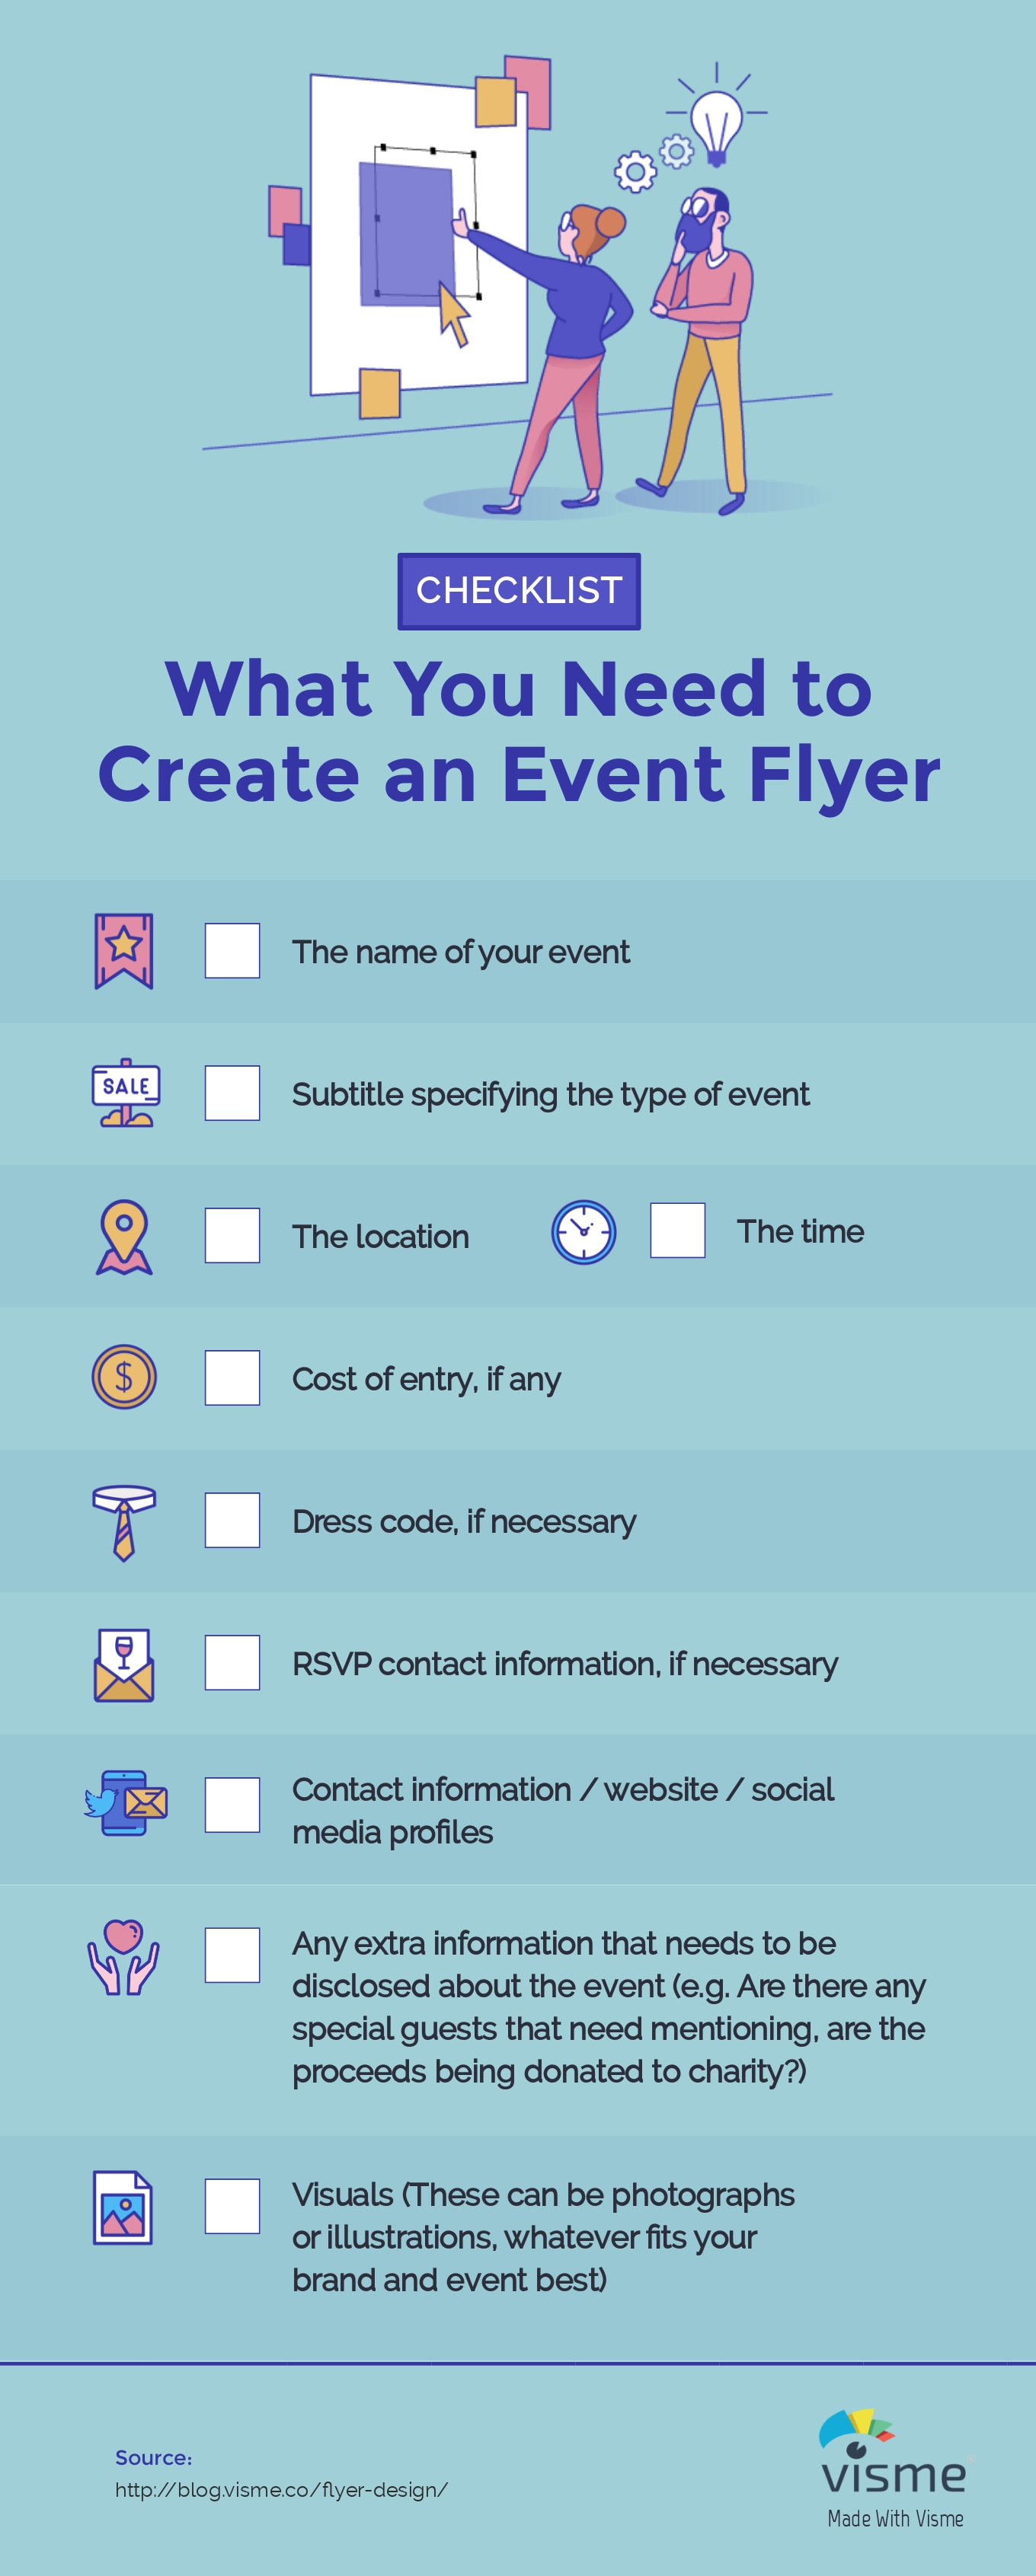 Checklist: What you need to create an event flyer. The name of your event / grand opening / fundraiser etc. A subtitle if necessary. Is it a dance party, a charity event, a fundraiser, a movie showing, a gallery opening, a dog adoption event? The location The time Cost of entry, if any The Dress Code, if necessary RSVP contact information if necessary Contact information / website / social media profiles Any extra information that needs to be disclosed about the event. Are there any special guests that need mentioning? Are the proceeds being donated to charity? Visuals. These can be photographs or illustrations—whatever fits your brand and event best.